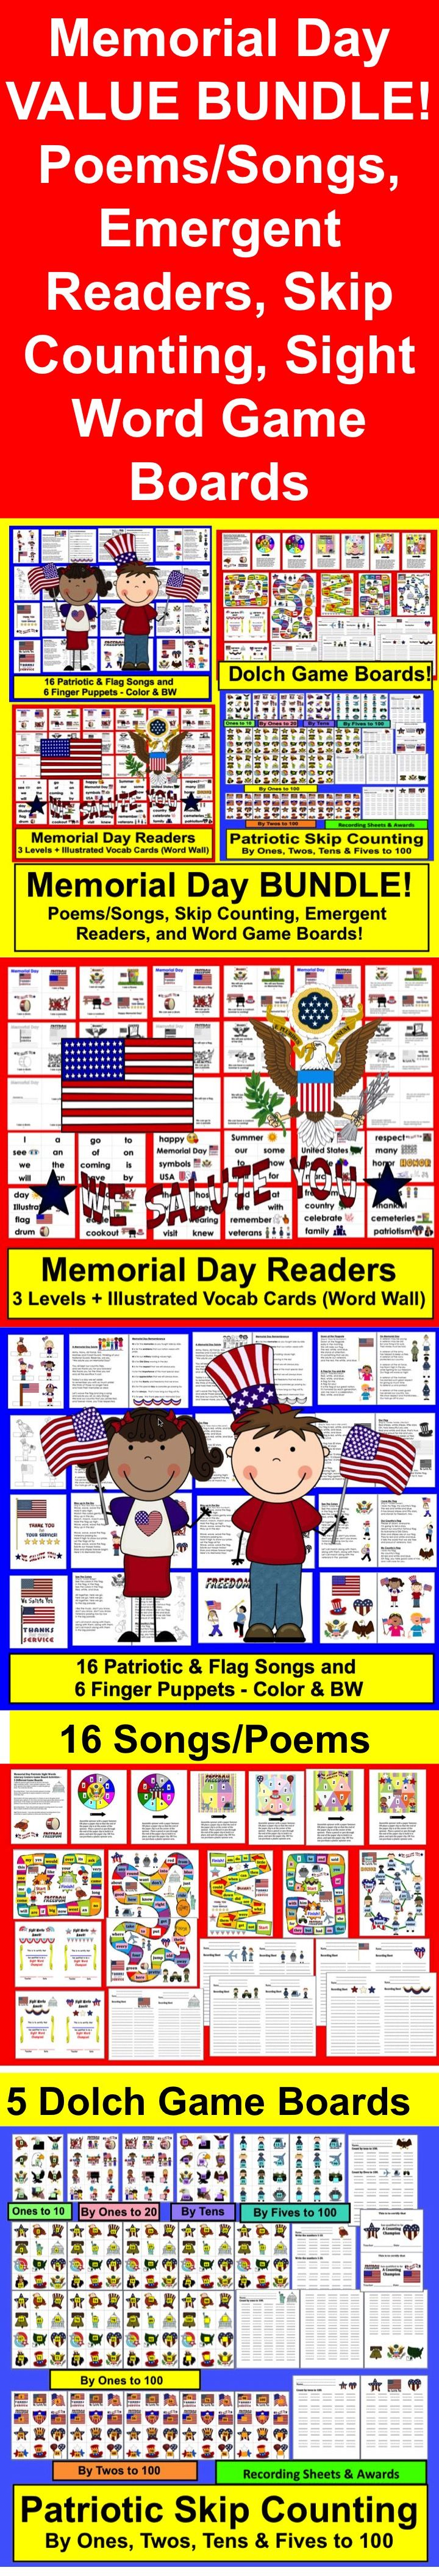 $ Memorial Day BUNDLE VALUE - A $5.00 Savings.. Early Primary Grades   ★ 94+ Pages - All 4 Products in This Bundle have a 4.0 Rating!  1) Memorial Day  Readers ★ 3 Reading Levels + Illustrated Vocabulary Cards for Word Wall or Pocket Chart)  2) Memorial Day Poems and Songs  ★ 16 Poems in Color and B/W for Students to Color  3) Memorial Day Counting and Skip Counting Activities by ones, twos, fives, and tens to 100.  4) A Set of 5 Patriotic Game Boards for the First 100 Dolch Sight Words